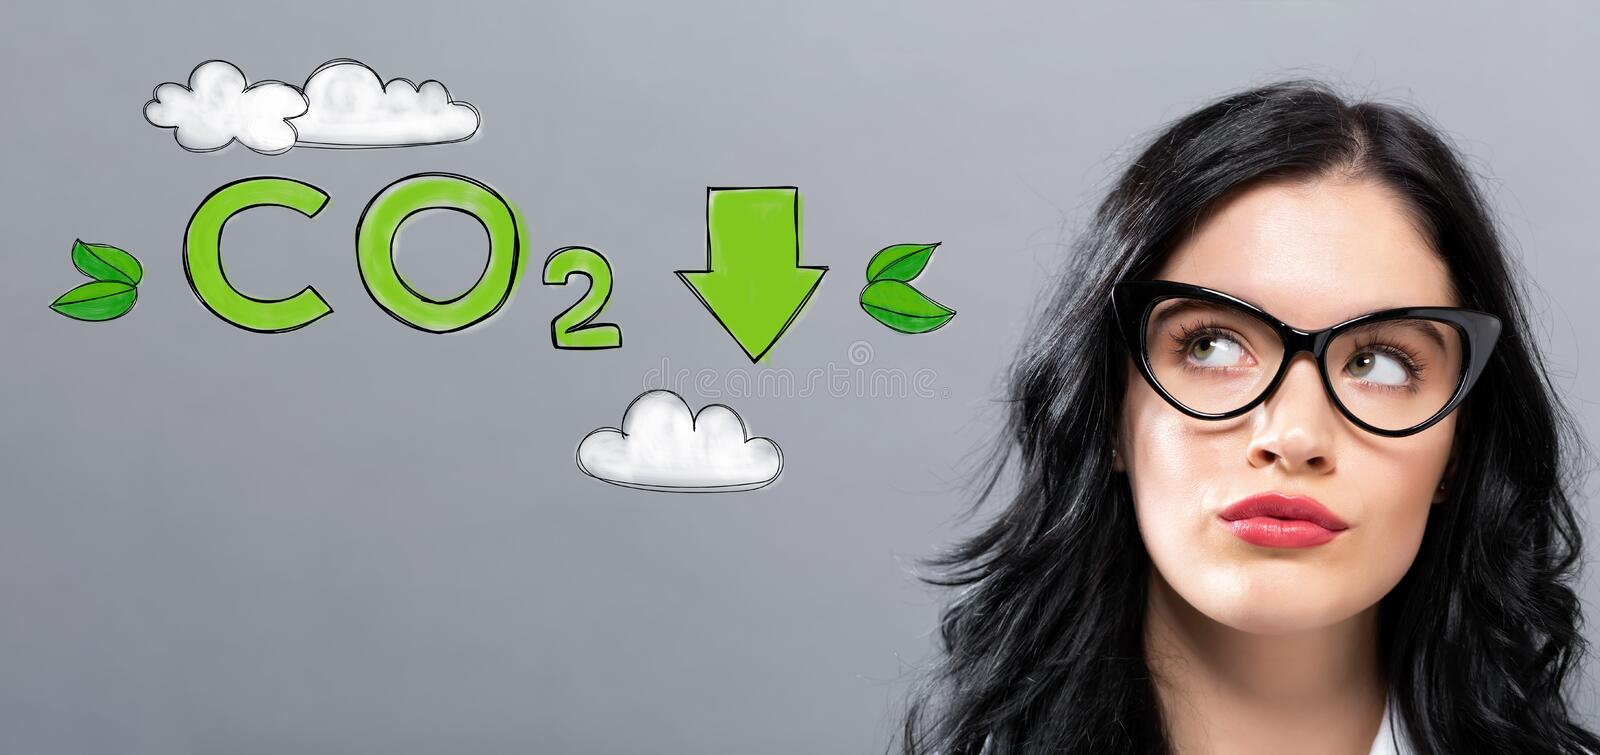 Reduce CO2 with young businesswoman stock image